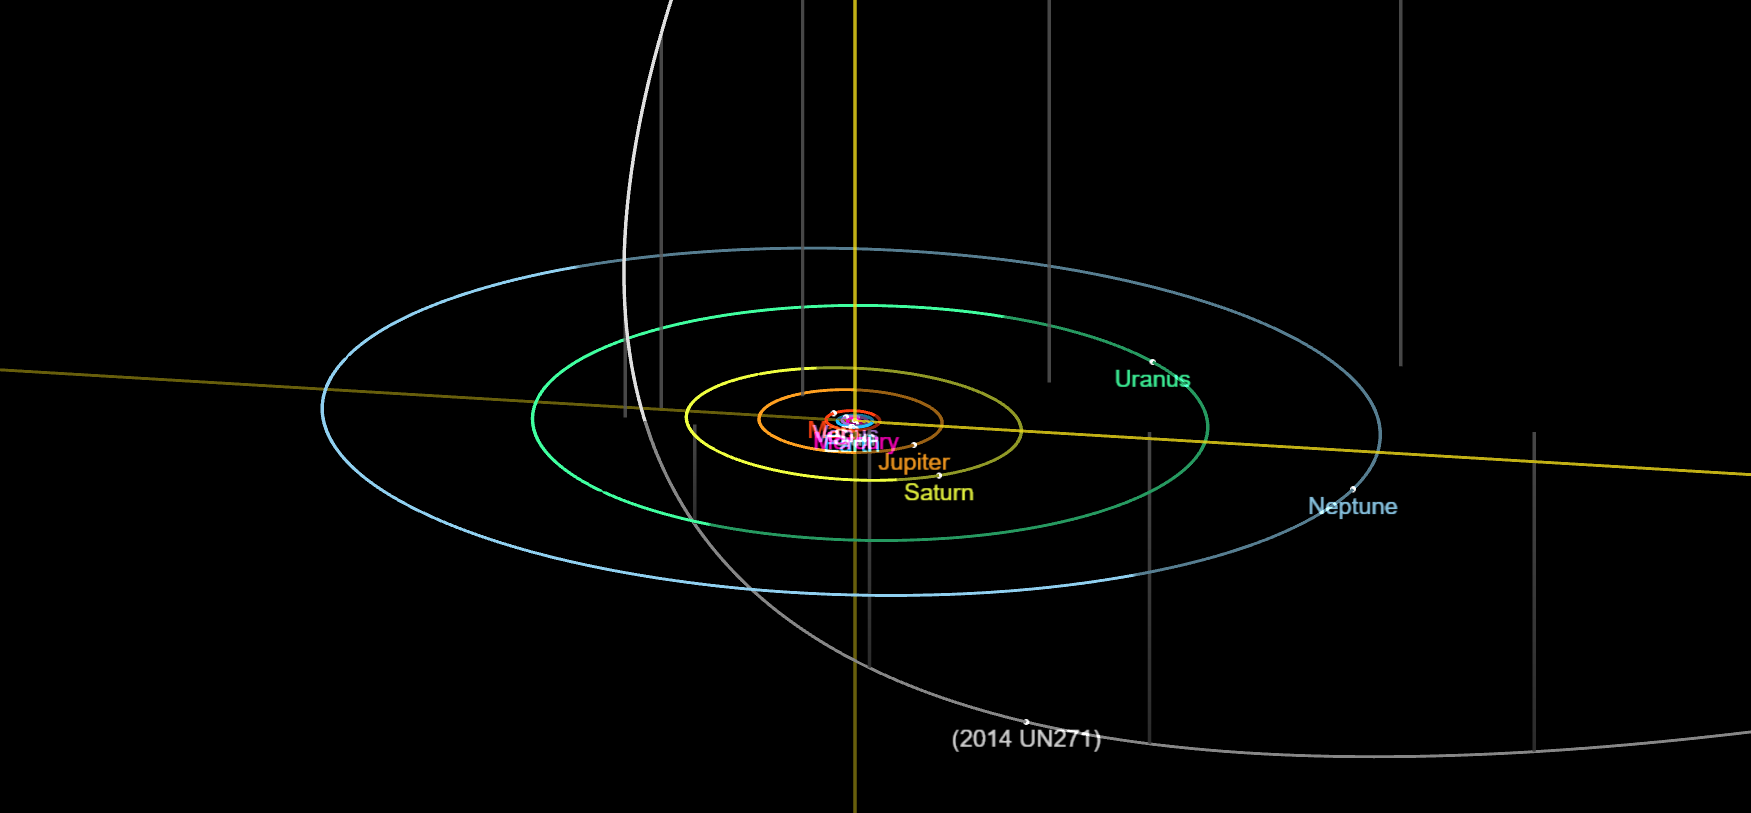 The current position and orbit of the minor planet and possibly the largest Oort Cloud object to date - 2014 UN271, which will make its closest pass to the Sun in 2031. Credit: JPL Small-Body Database